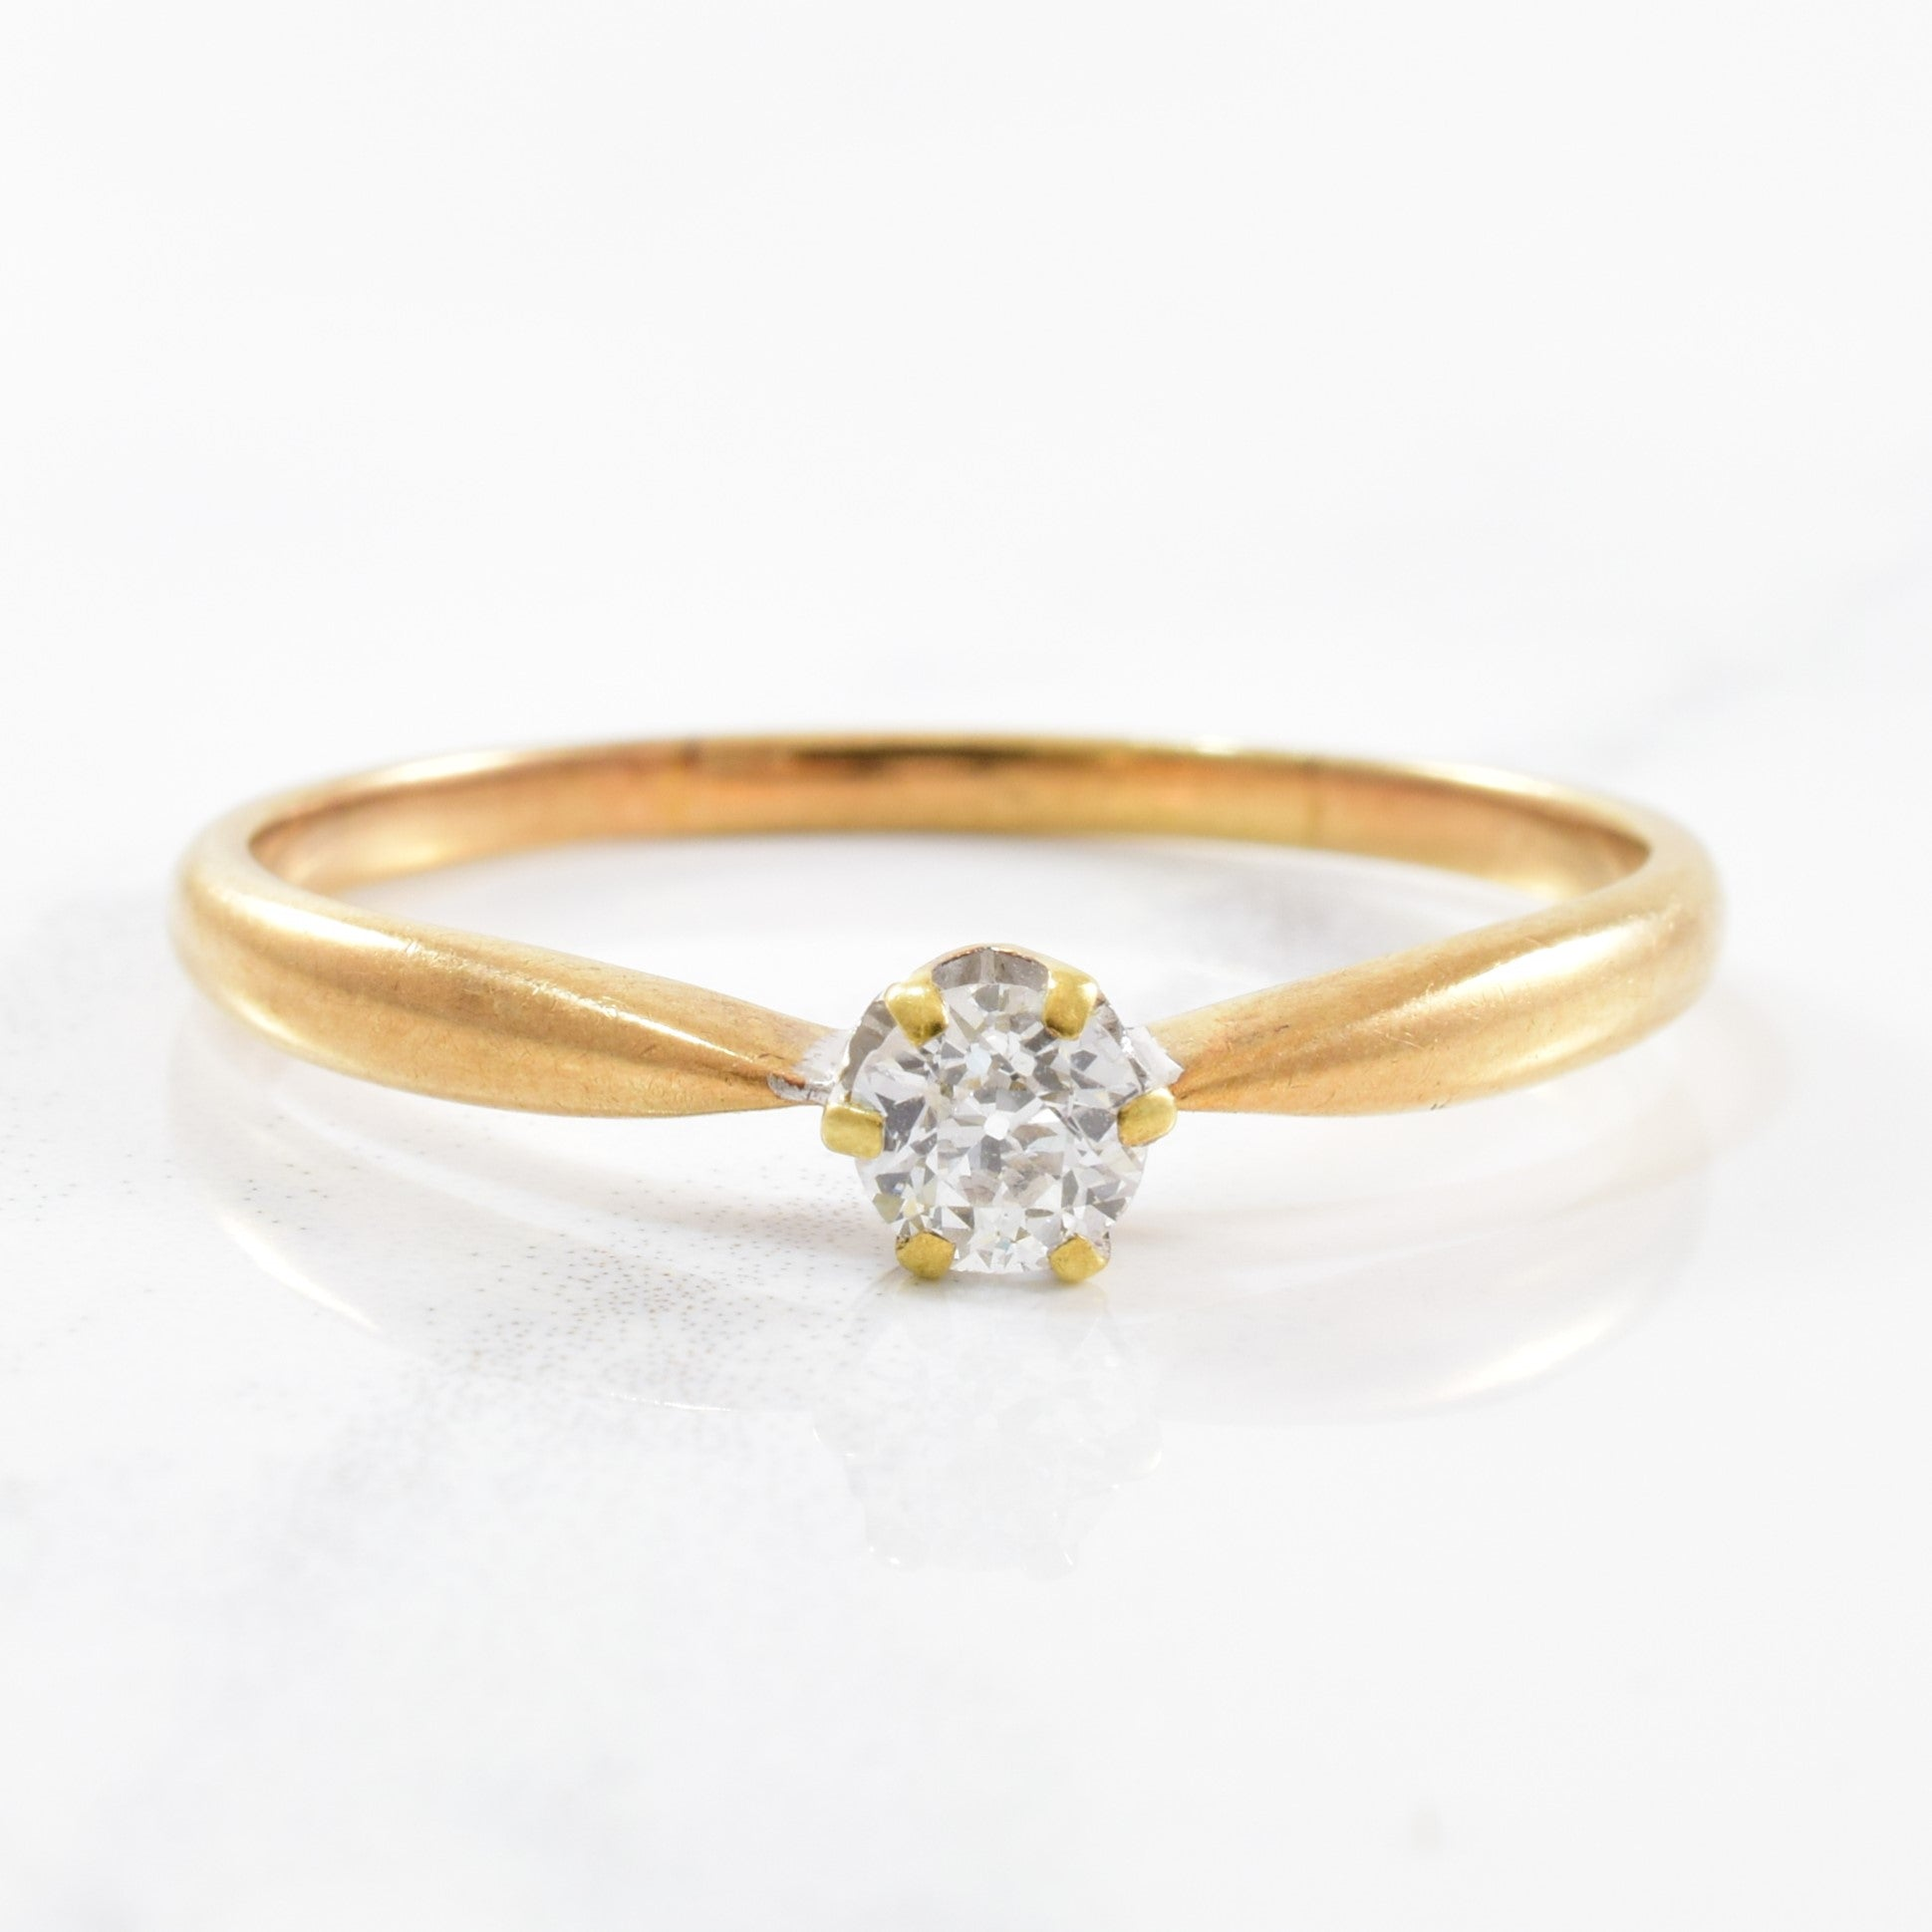 Old European Cut Diamond Solitaire Ring | 0.26ct | SZ 11.25 |